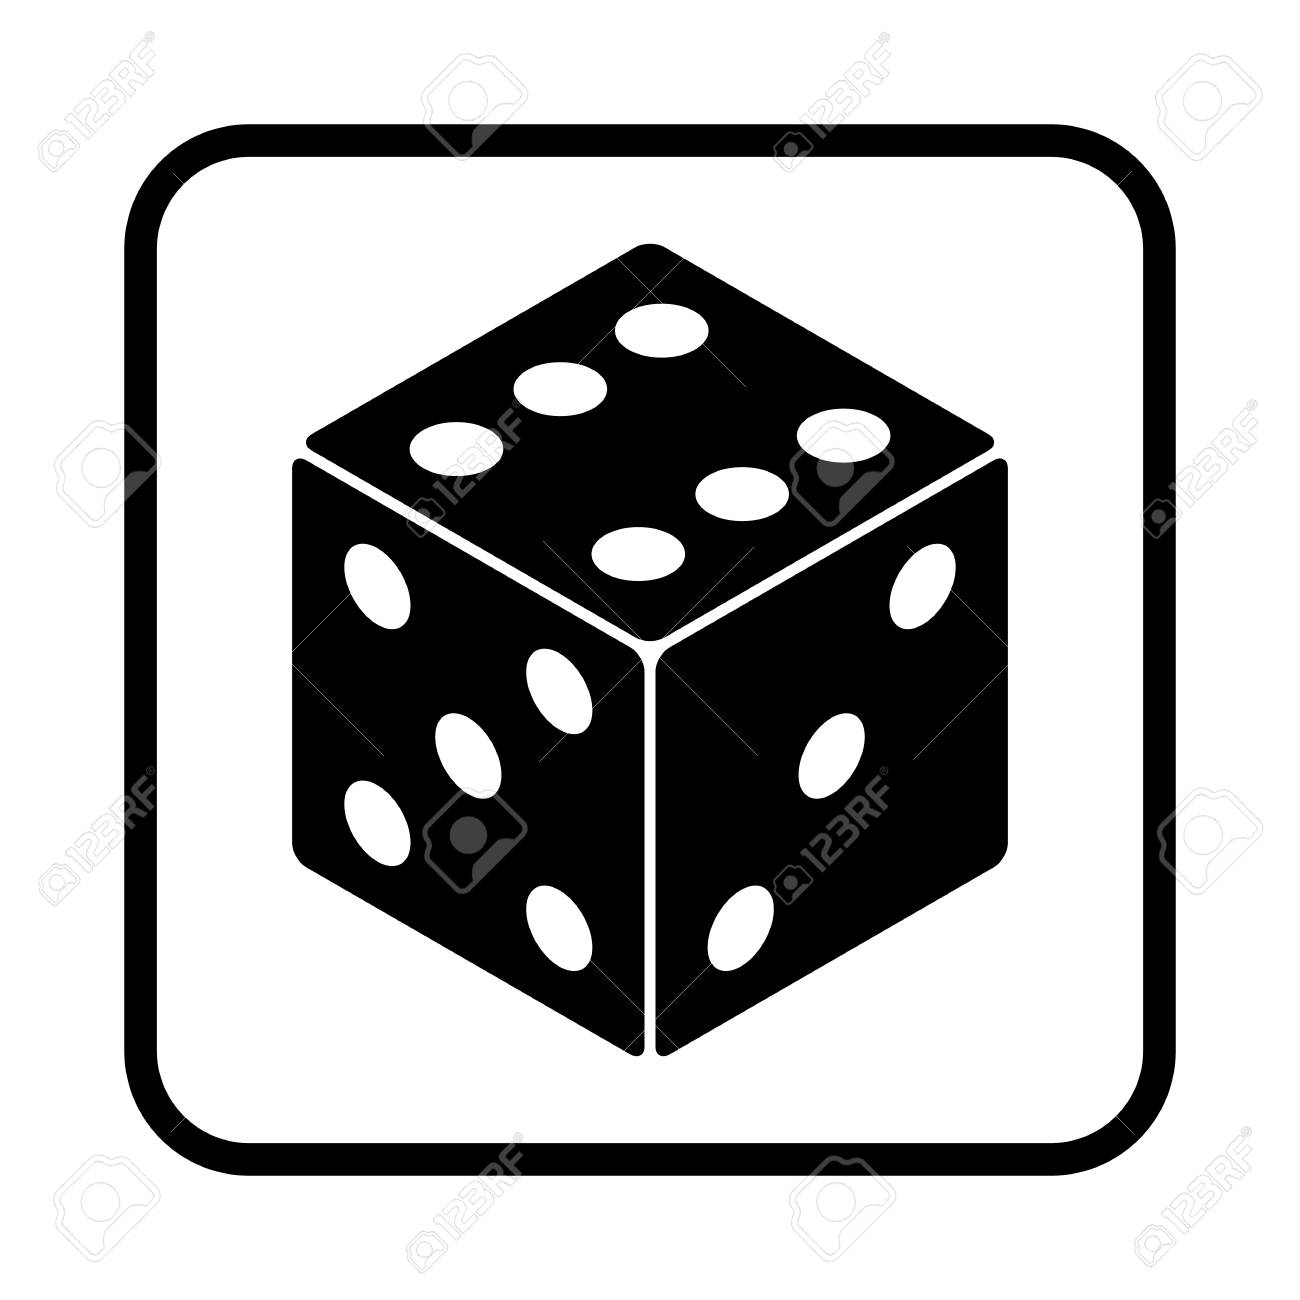 dice vector icon for web and mobile royalty free cliparts vectors rh 123rf com dice vector free download dice vector free download